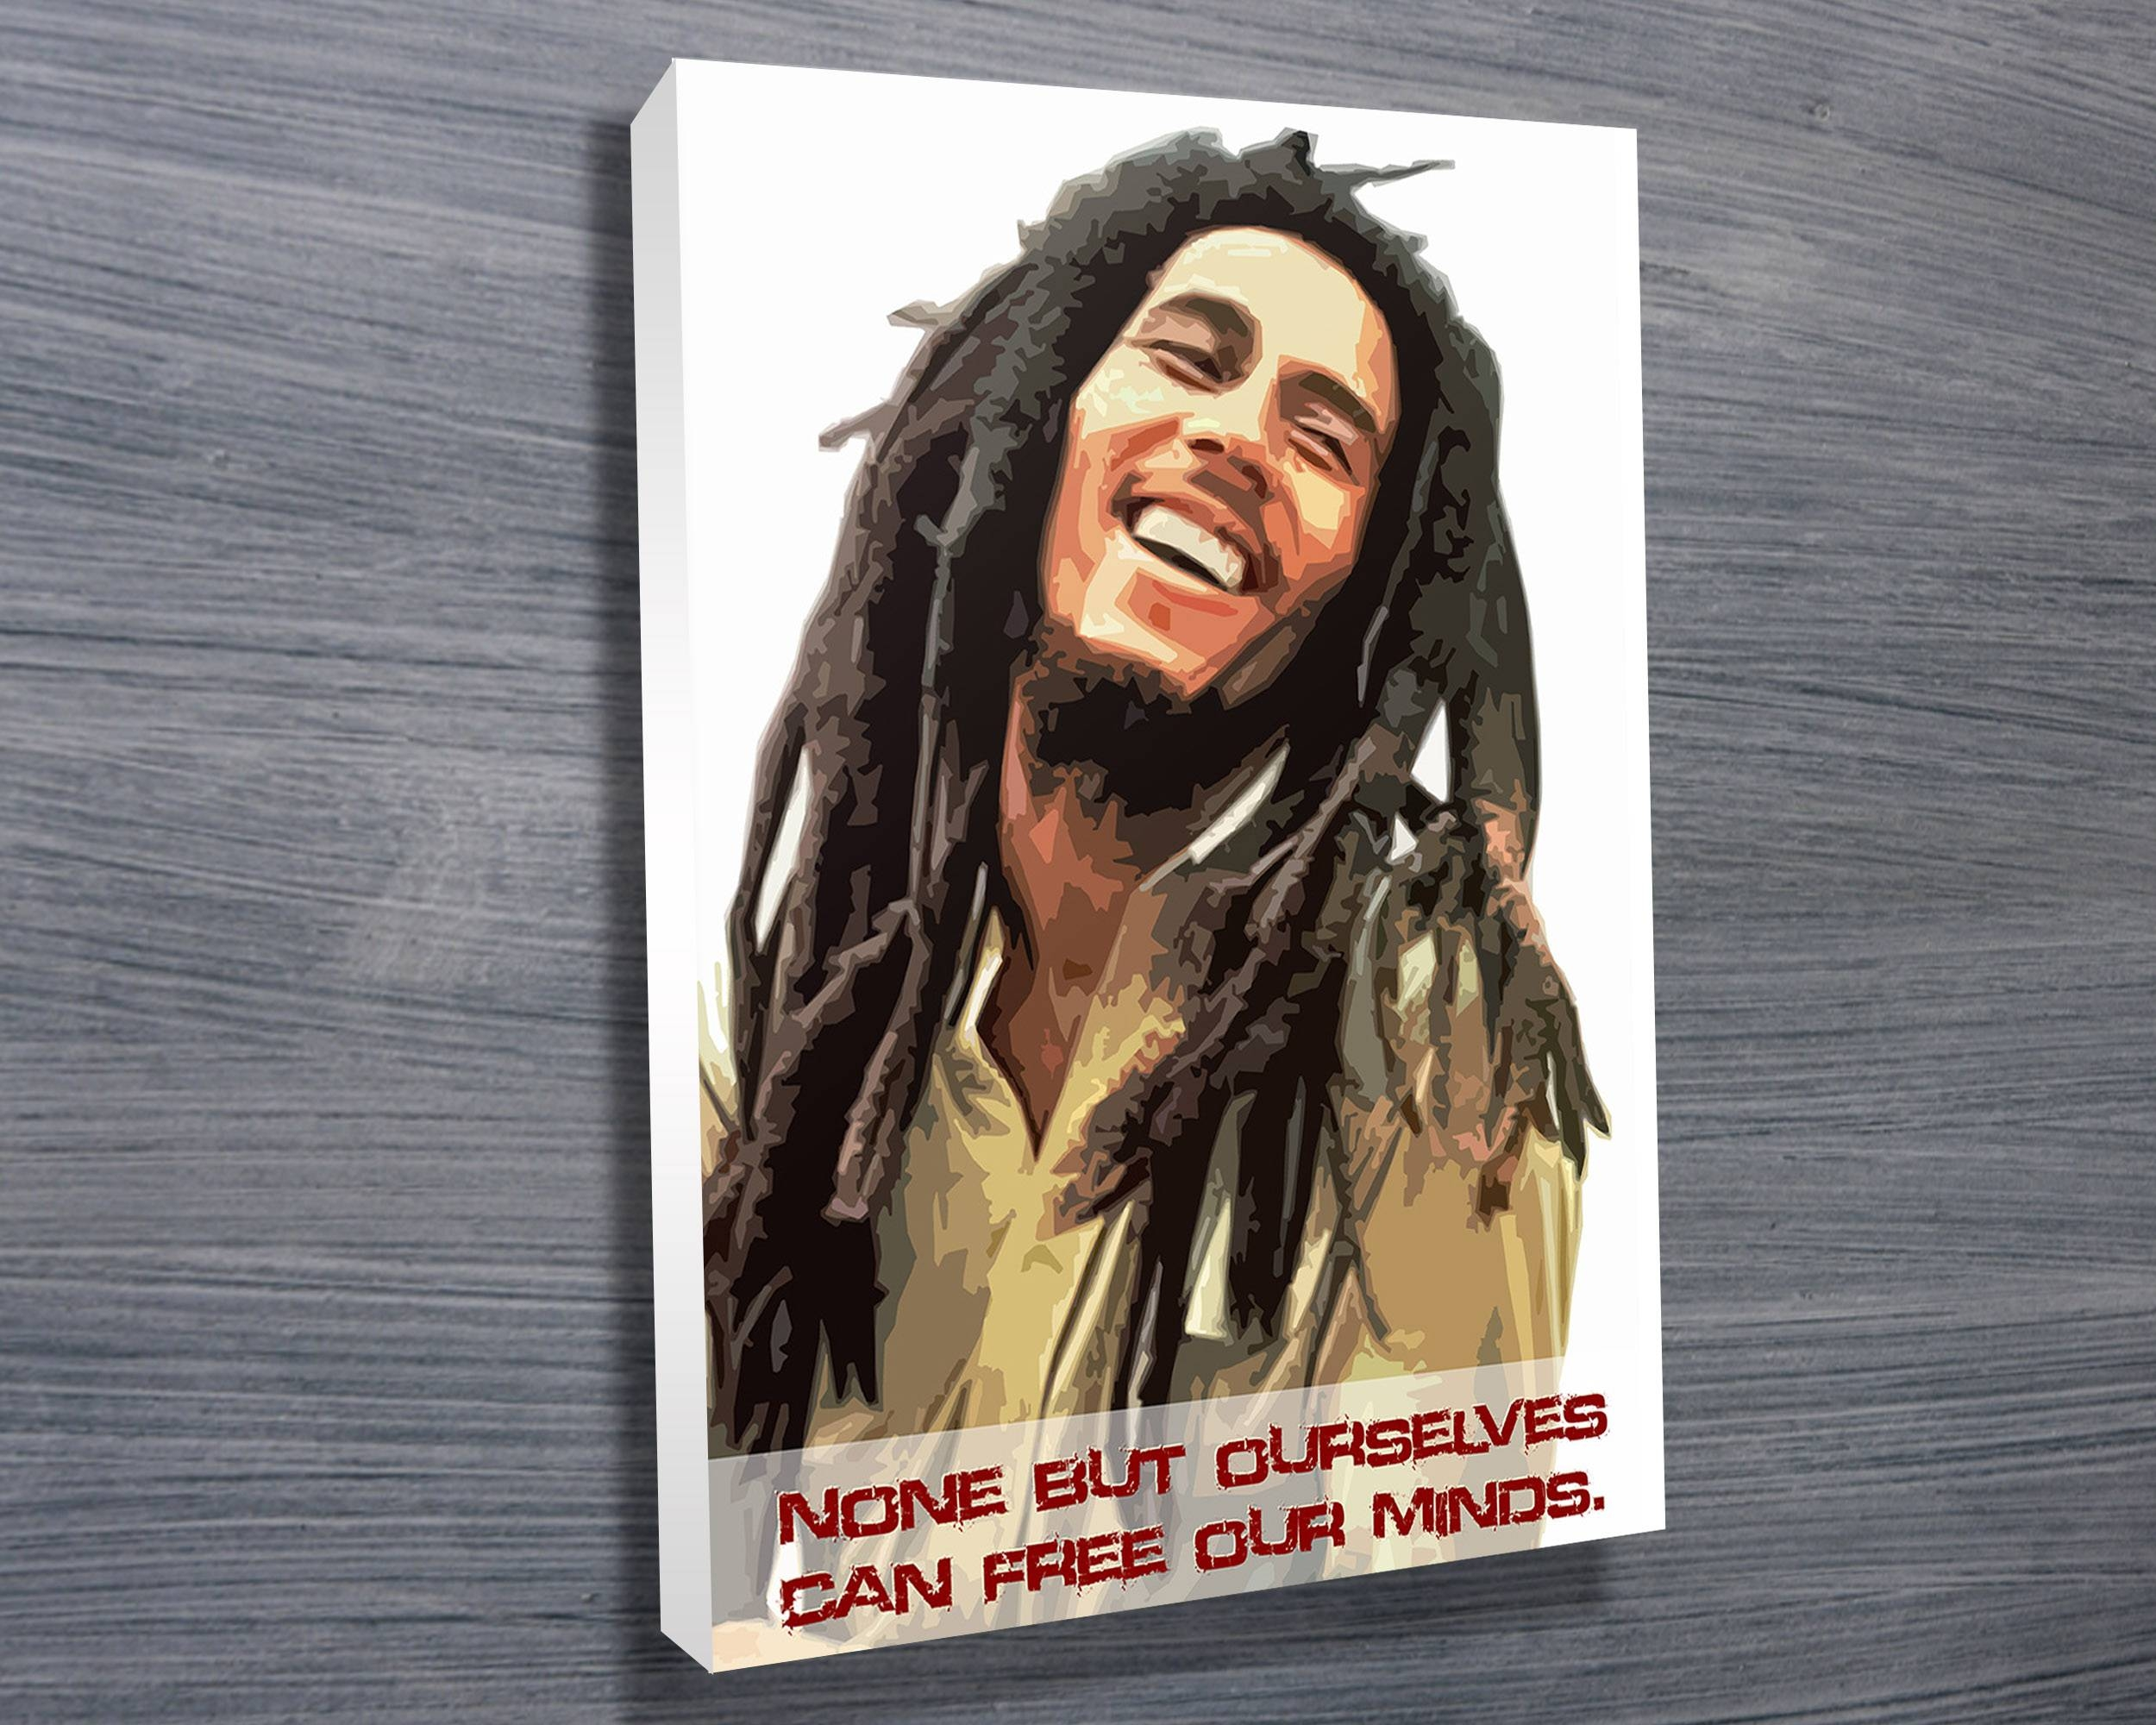 Bob Marley Art – Canvas Prints Australia Within Most Current Bob Marley Canvas Wall Art (View 5 of 25)